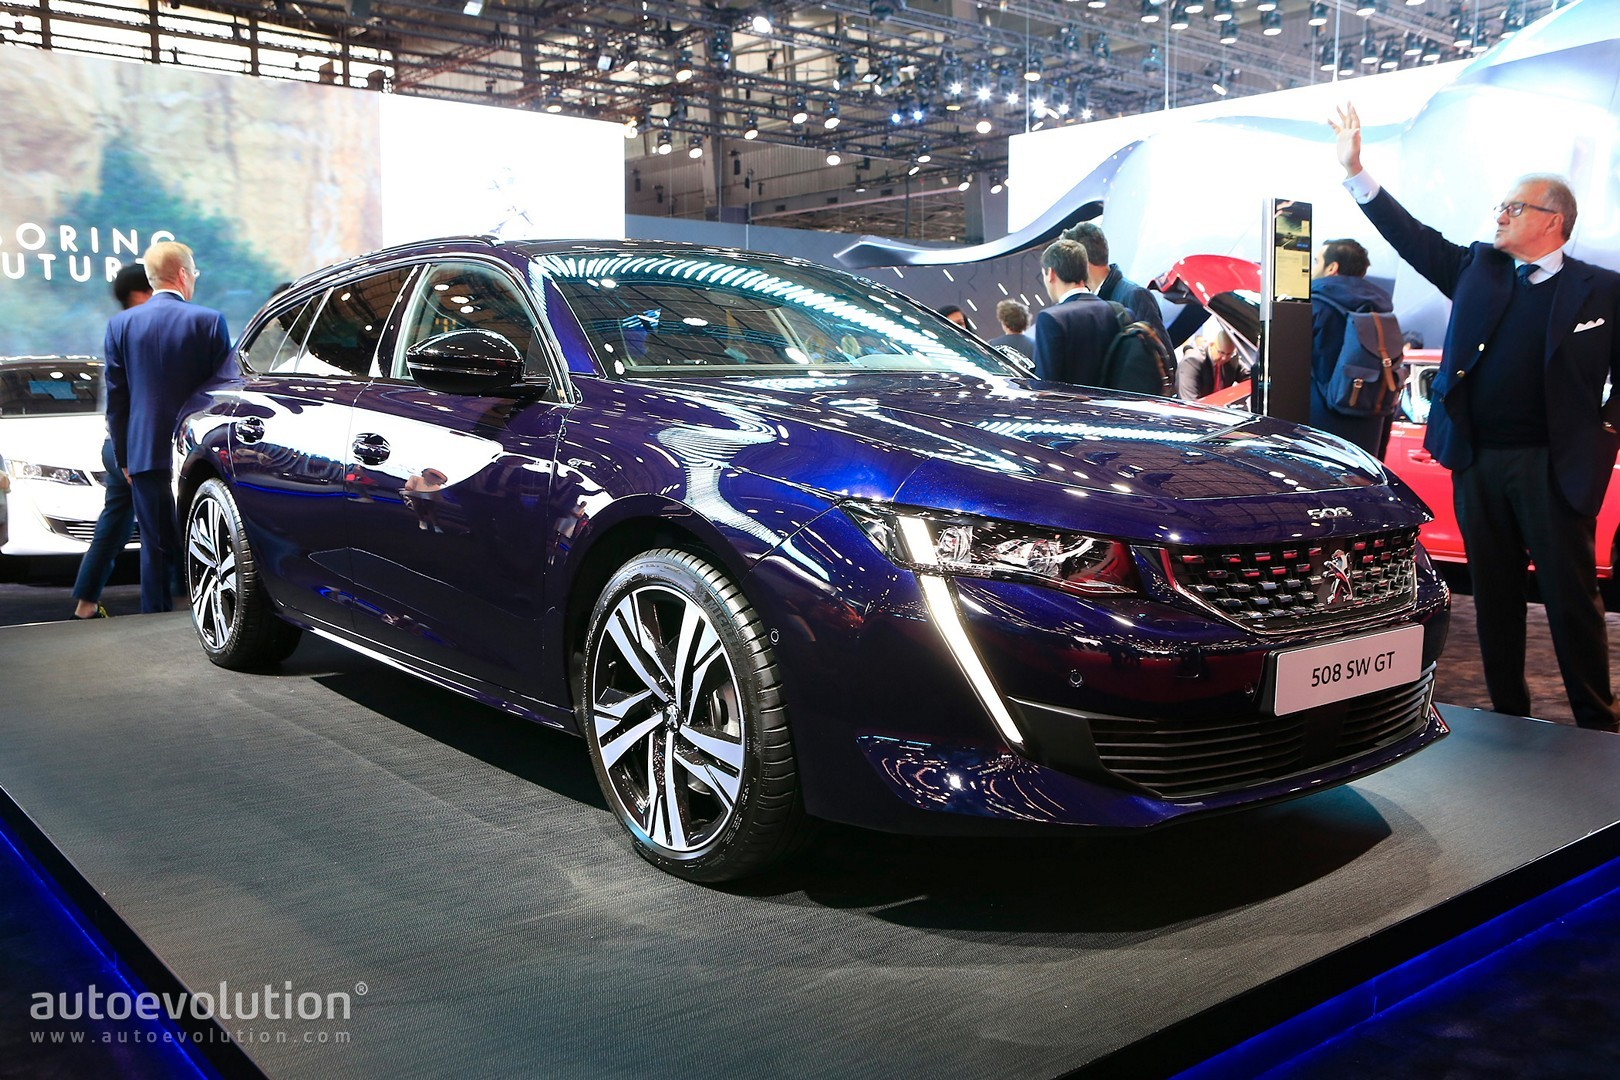 2019 Peugeot 508 Gt Is A 225 Hp Lightweight Wagon In Paris